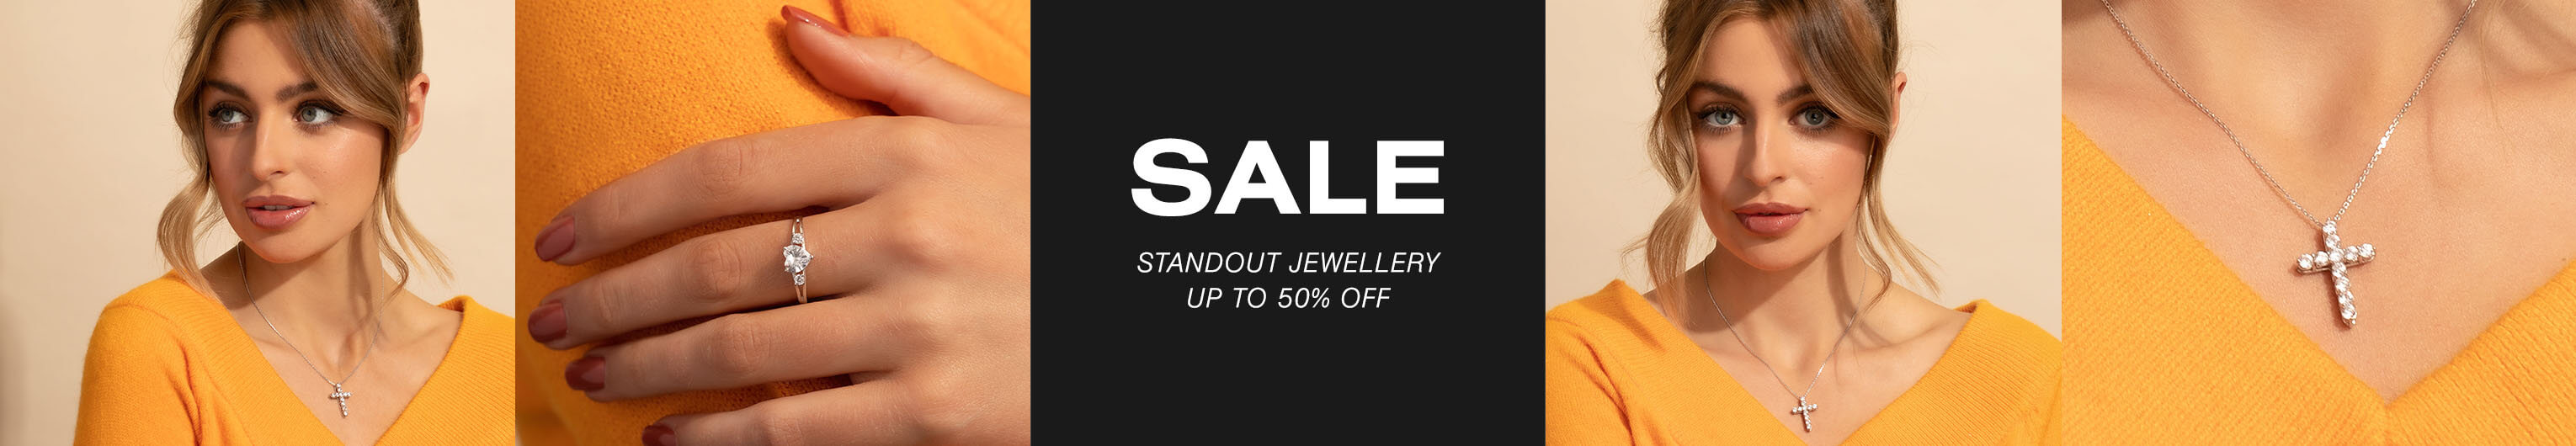 Sale: Up to 50% OffSale: Standout Jewellery - Up to 50% off